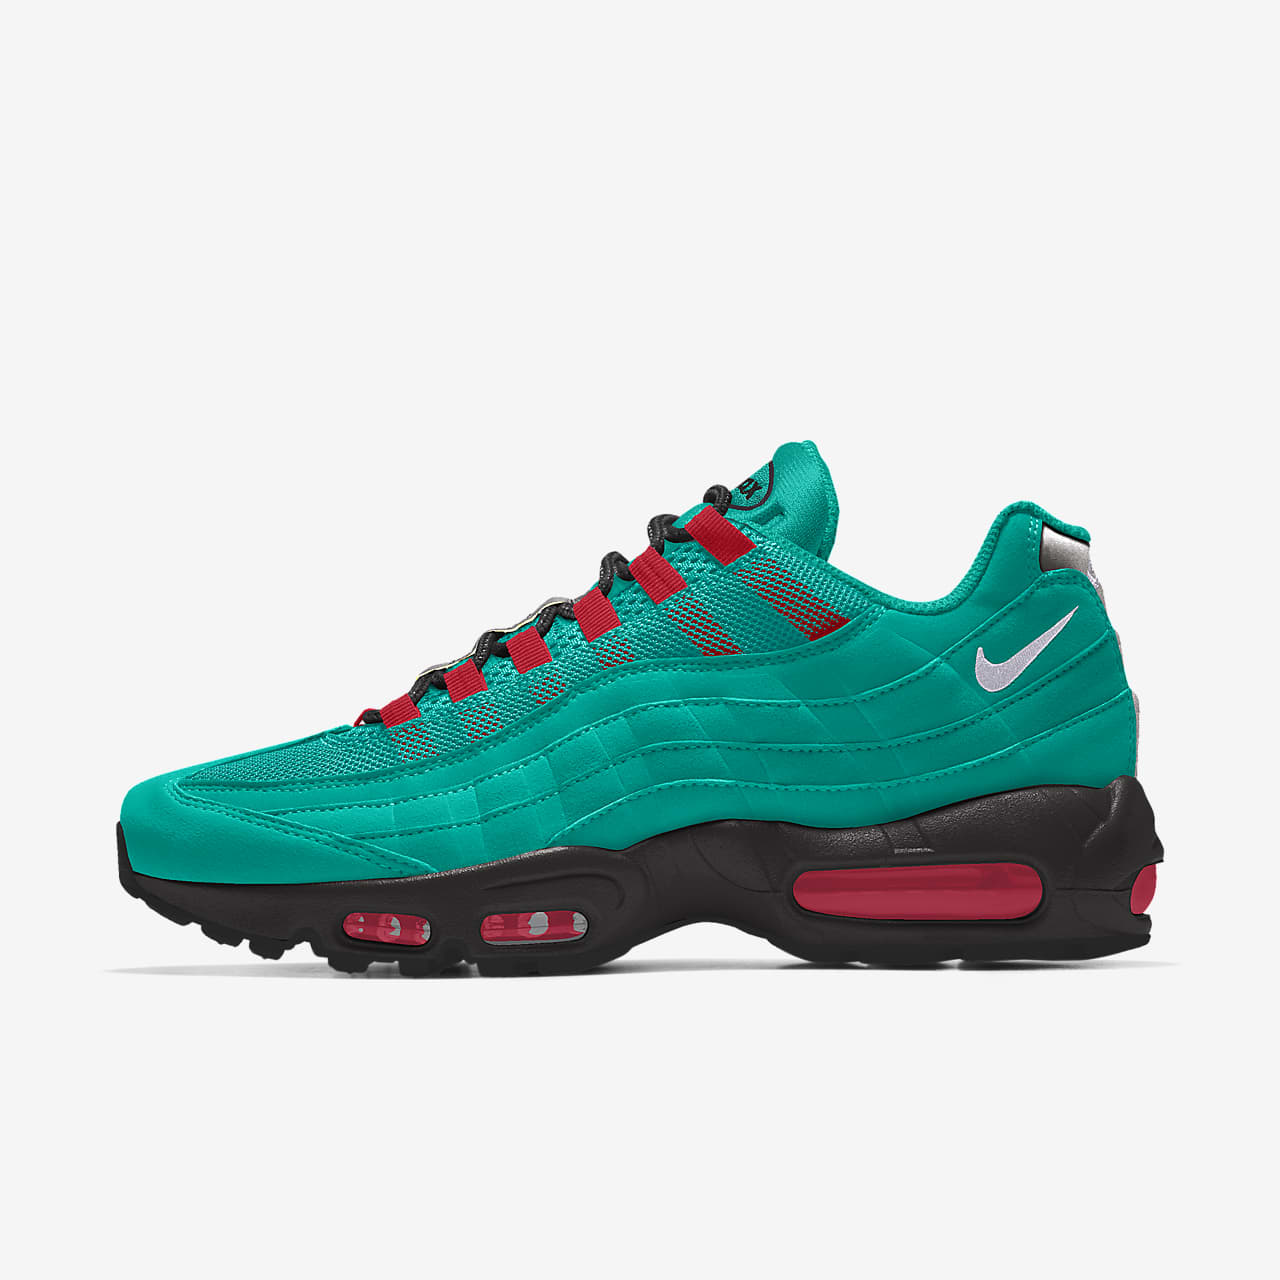 Nike Air Max 95 Unlocked By You personalisierbarer Schuh